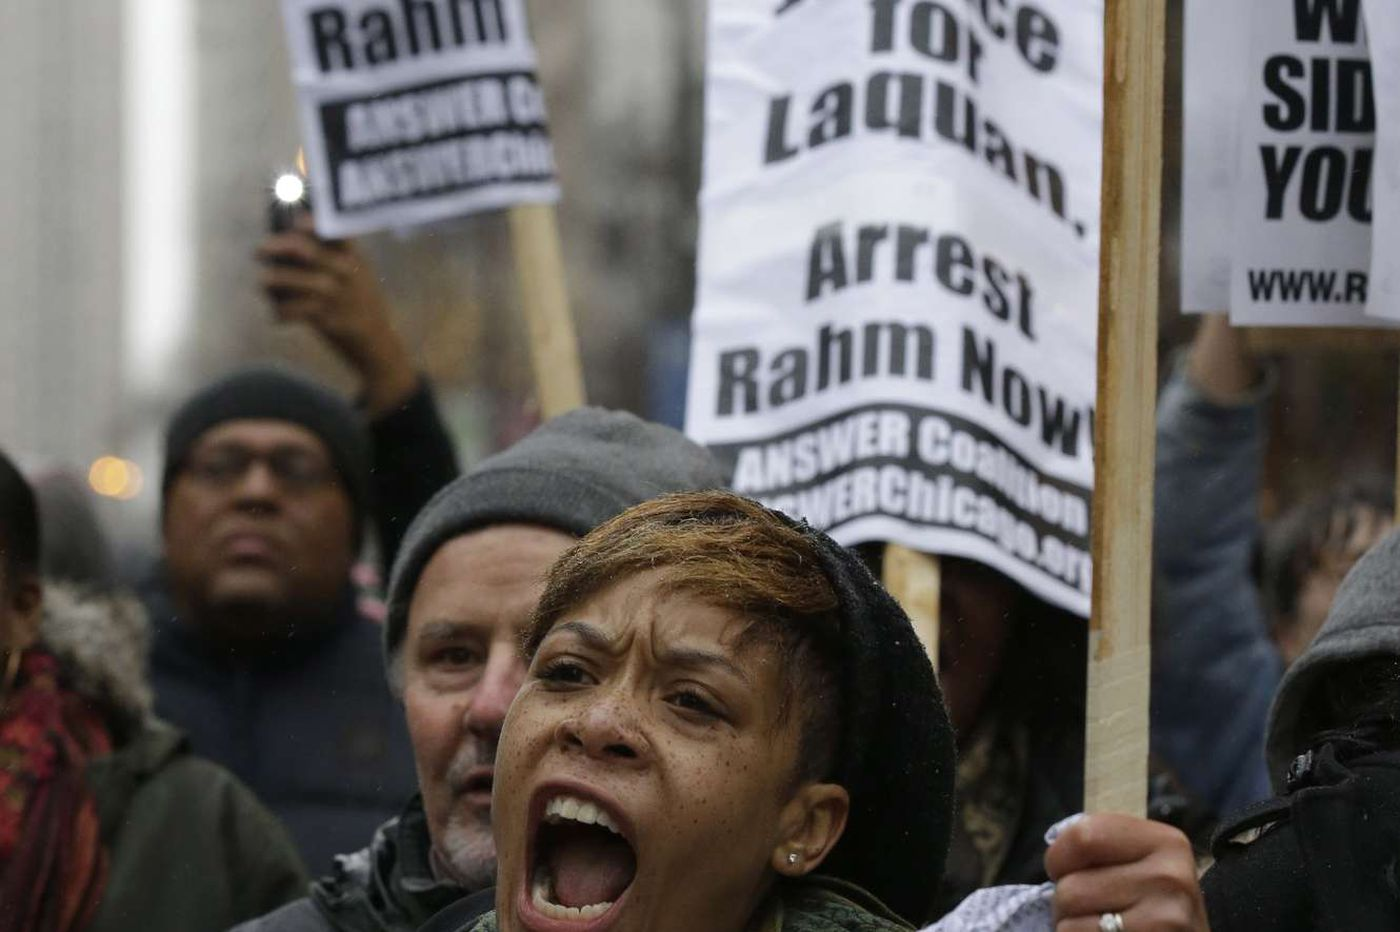 More than 1,000 march to protest killing in Chicago